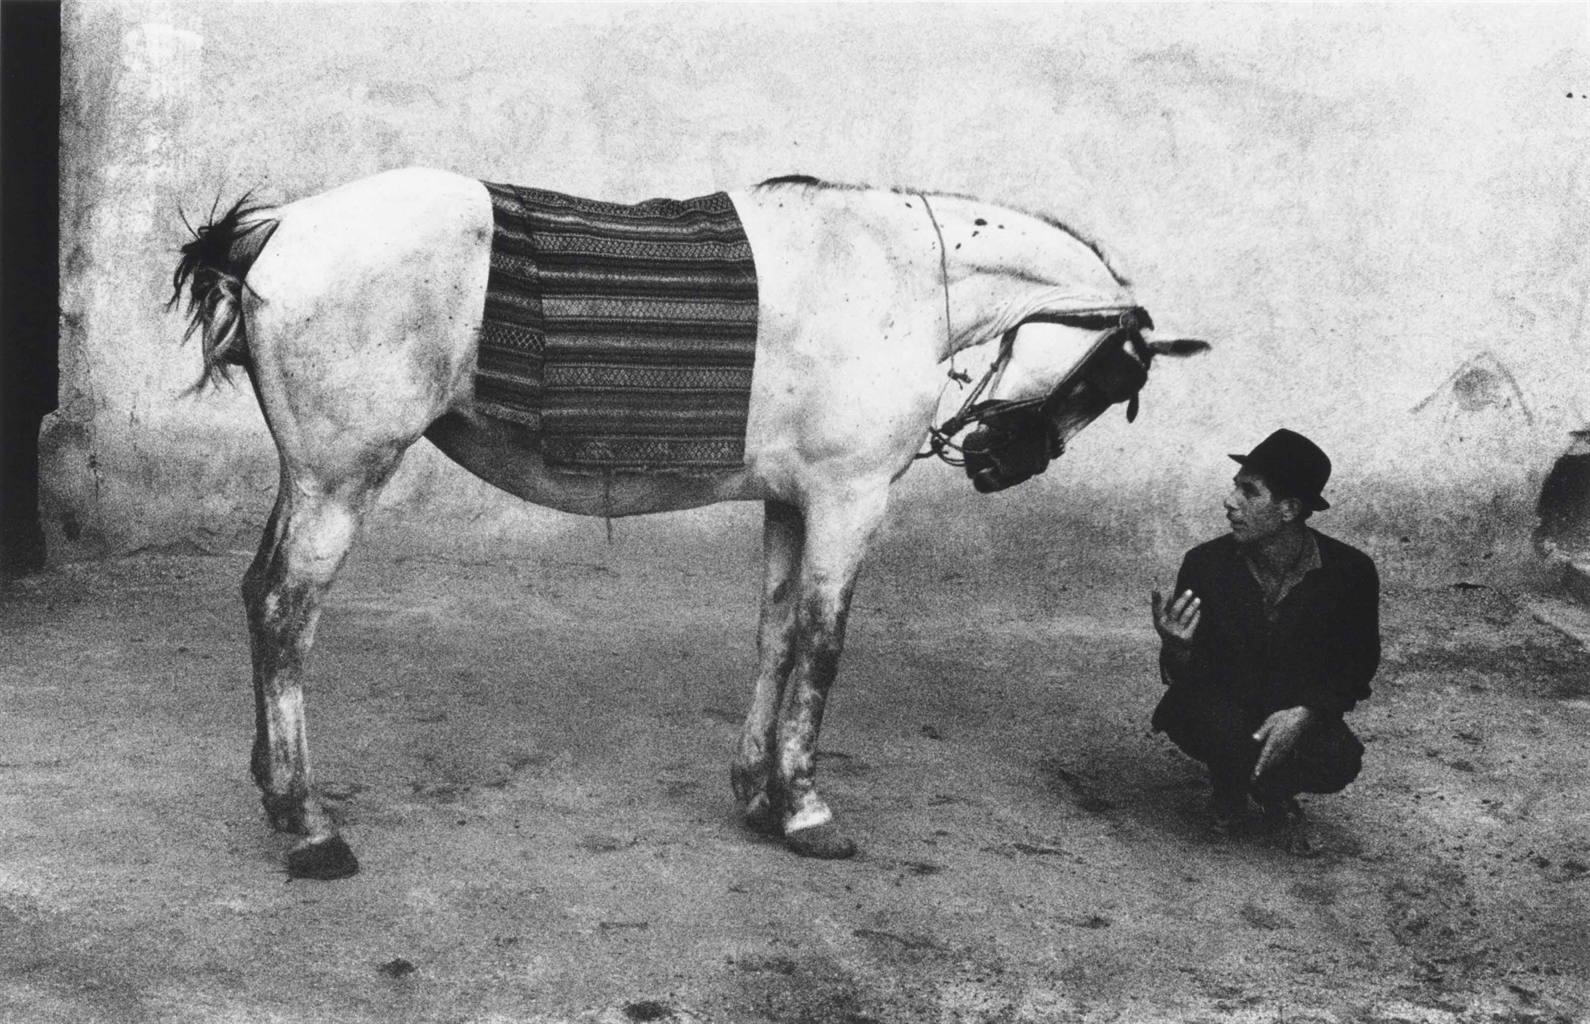 Josef Koudelka-Man with horse, Romania-1968